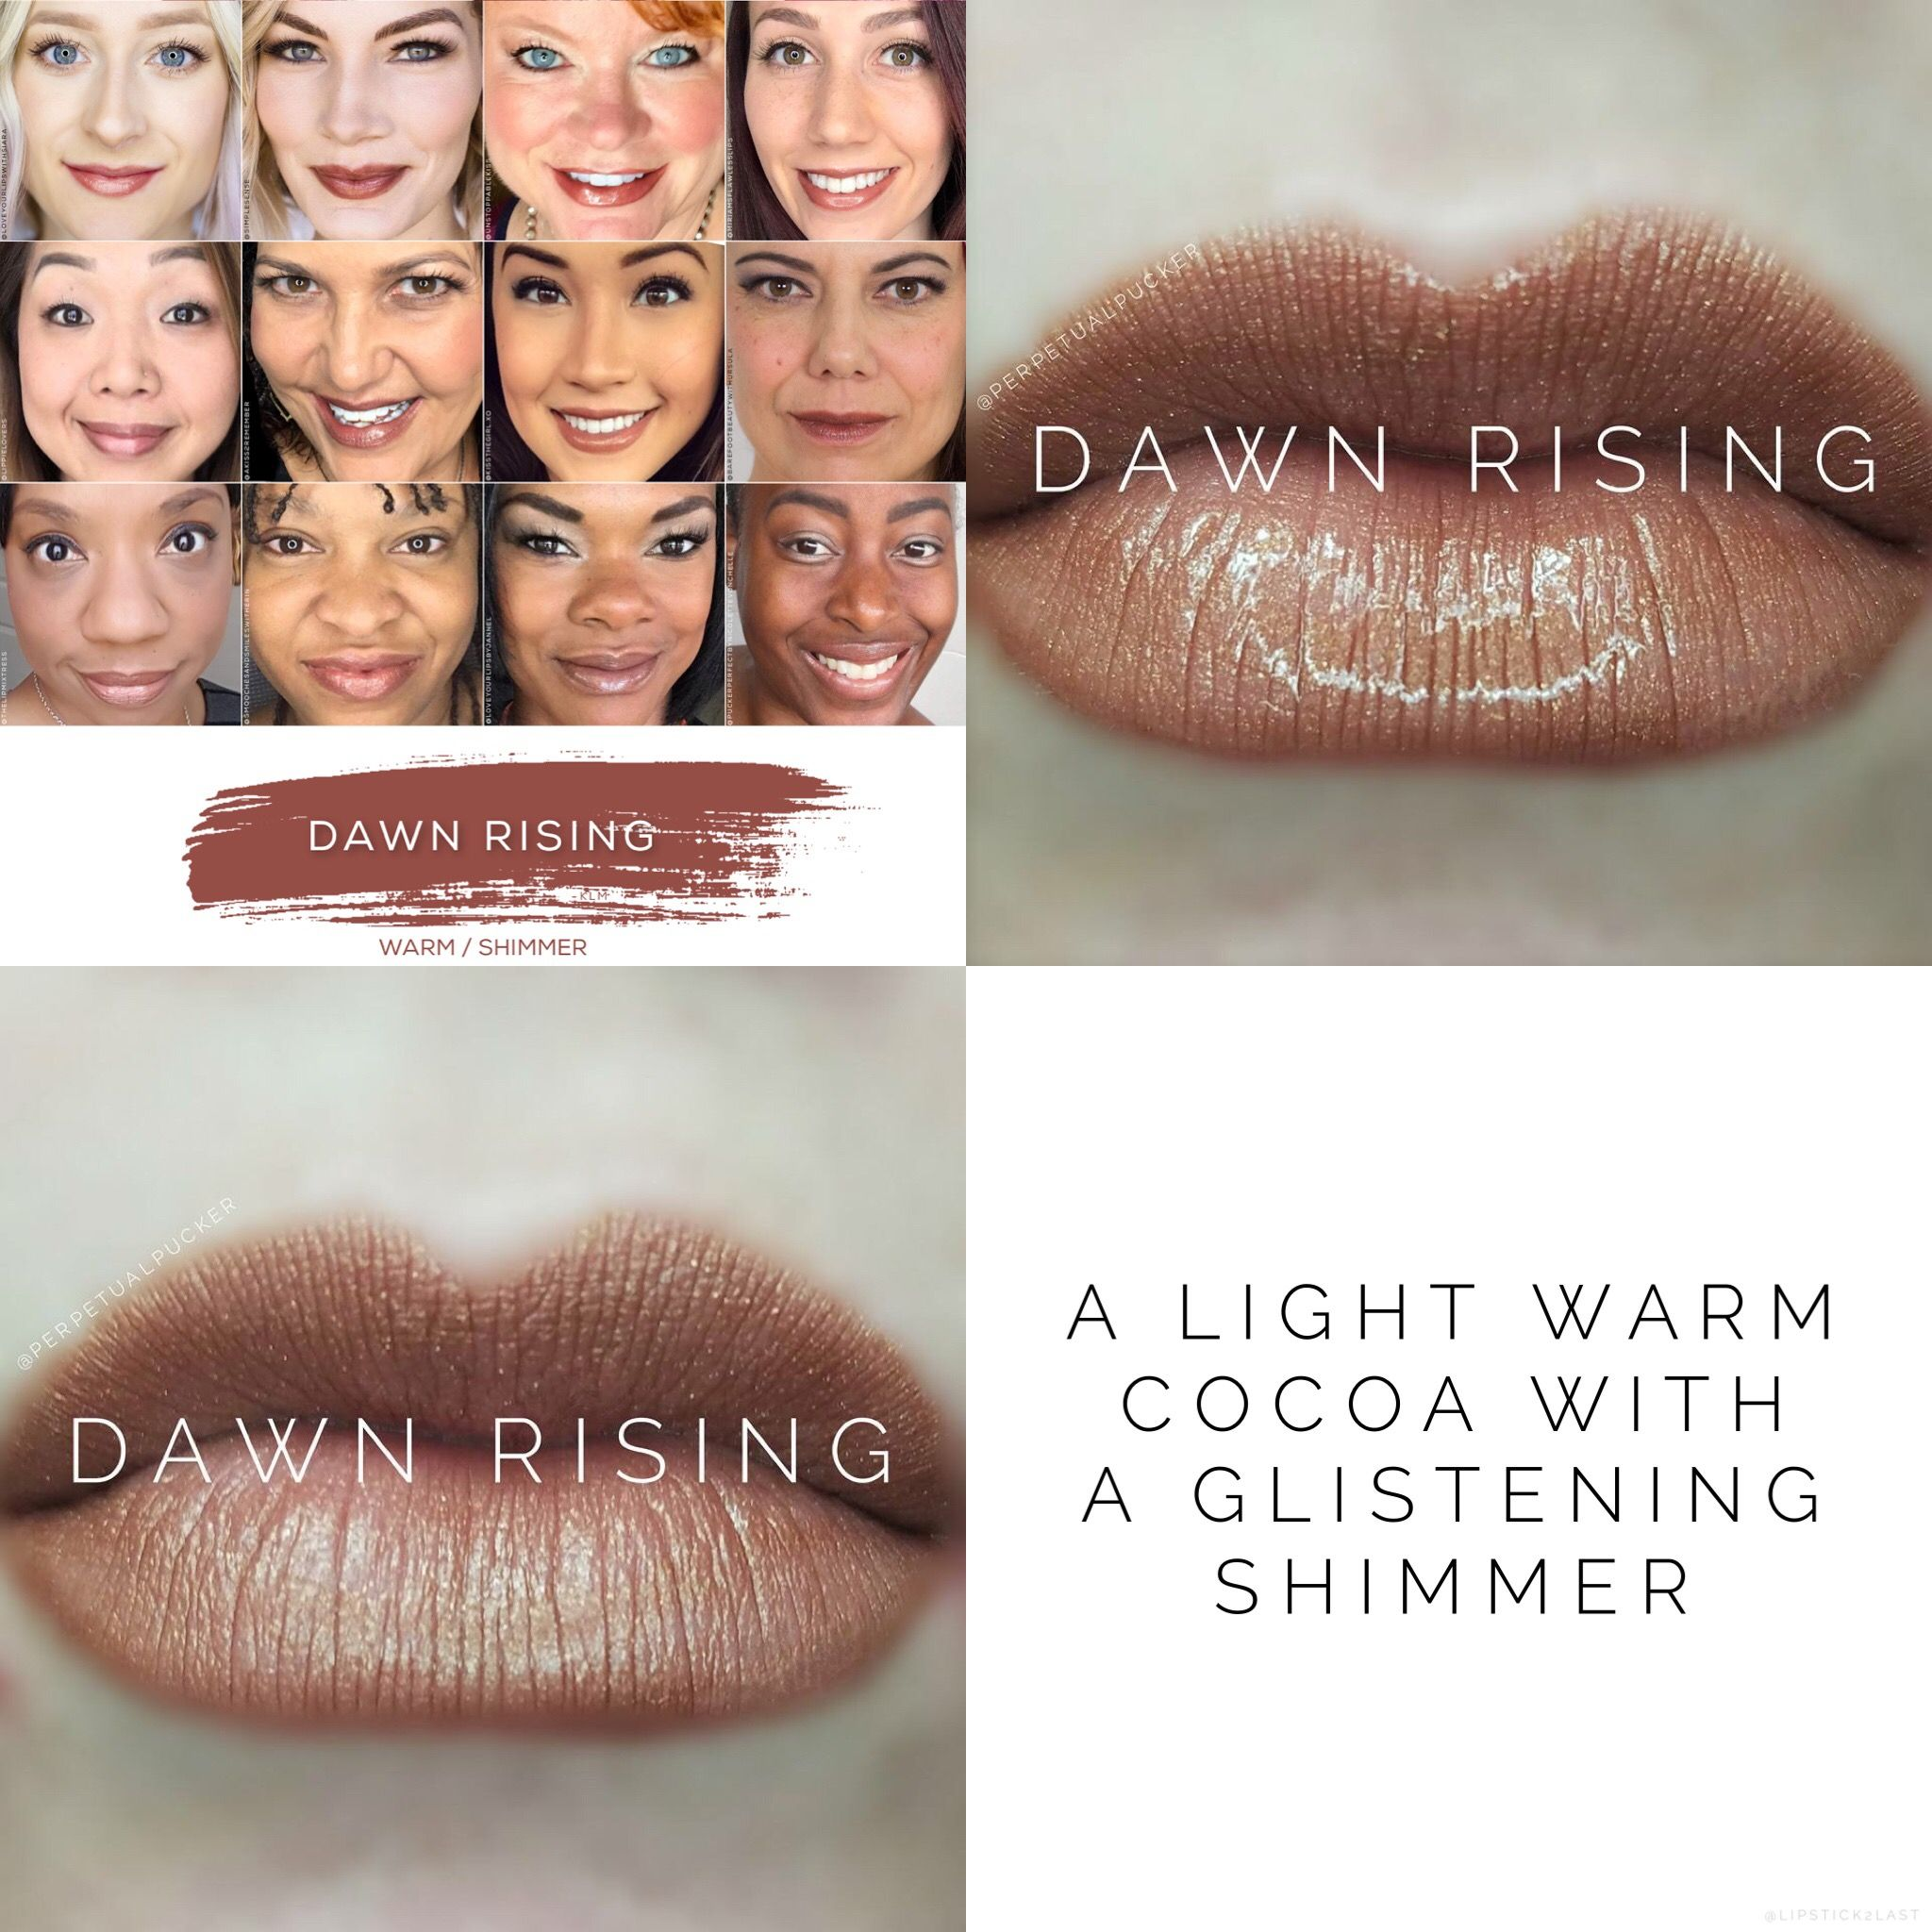 Dawn Rising LipSense is a light warm cocoa with a glistening shimmer.